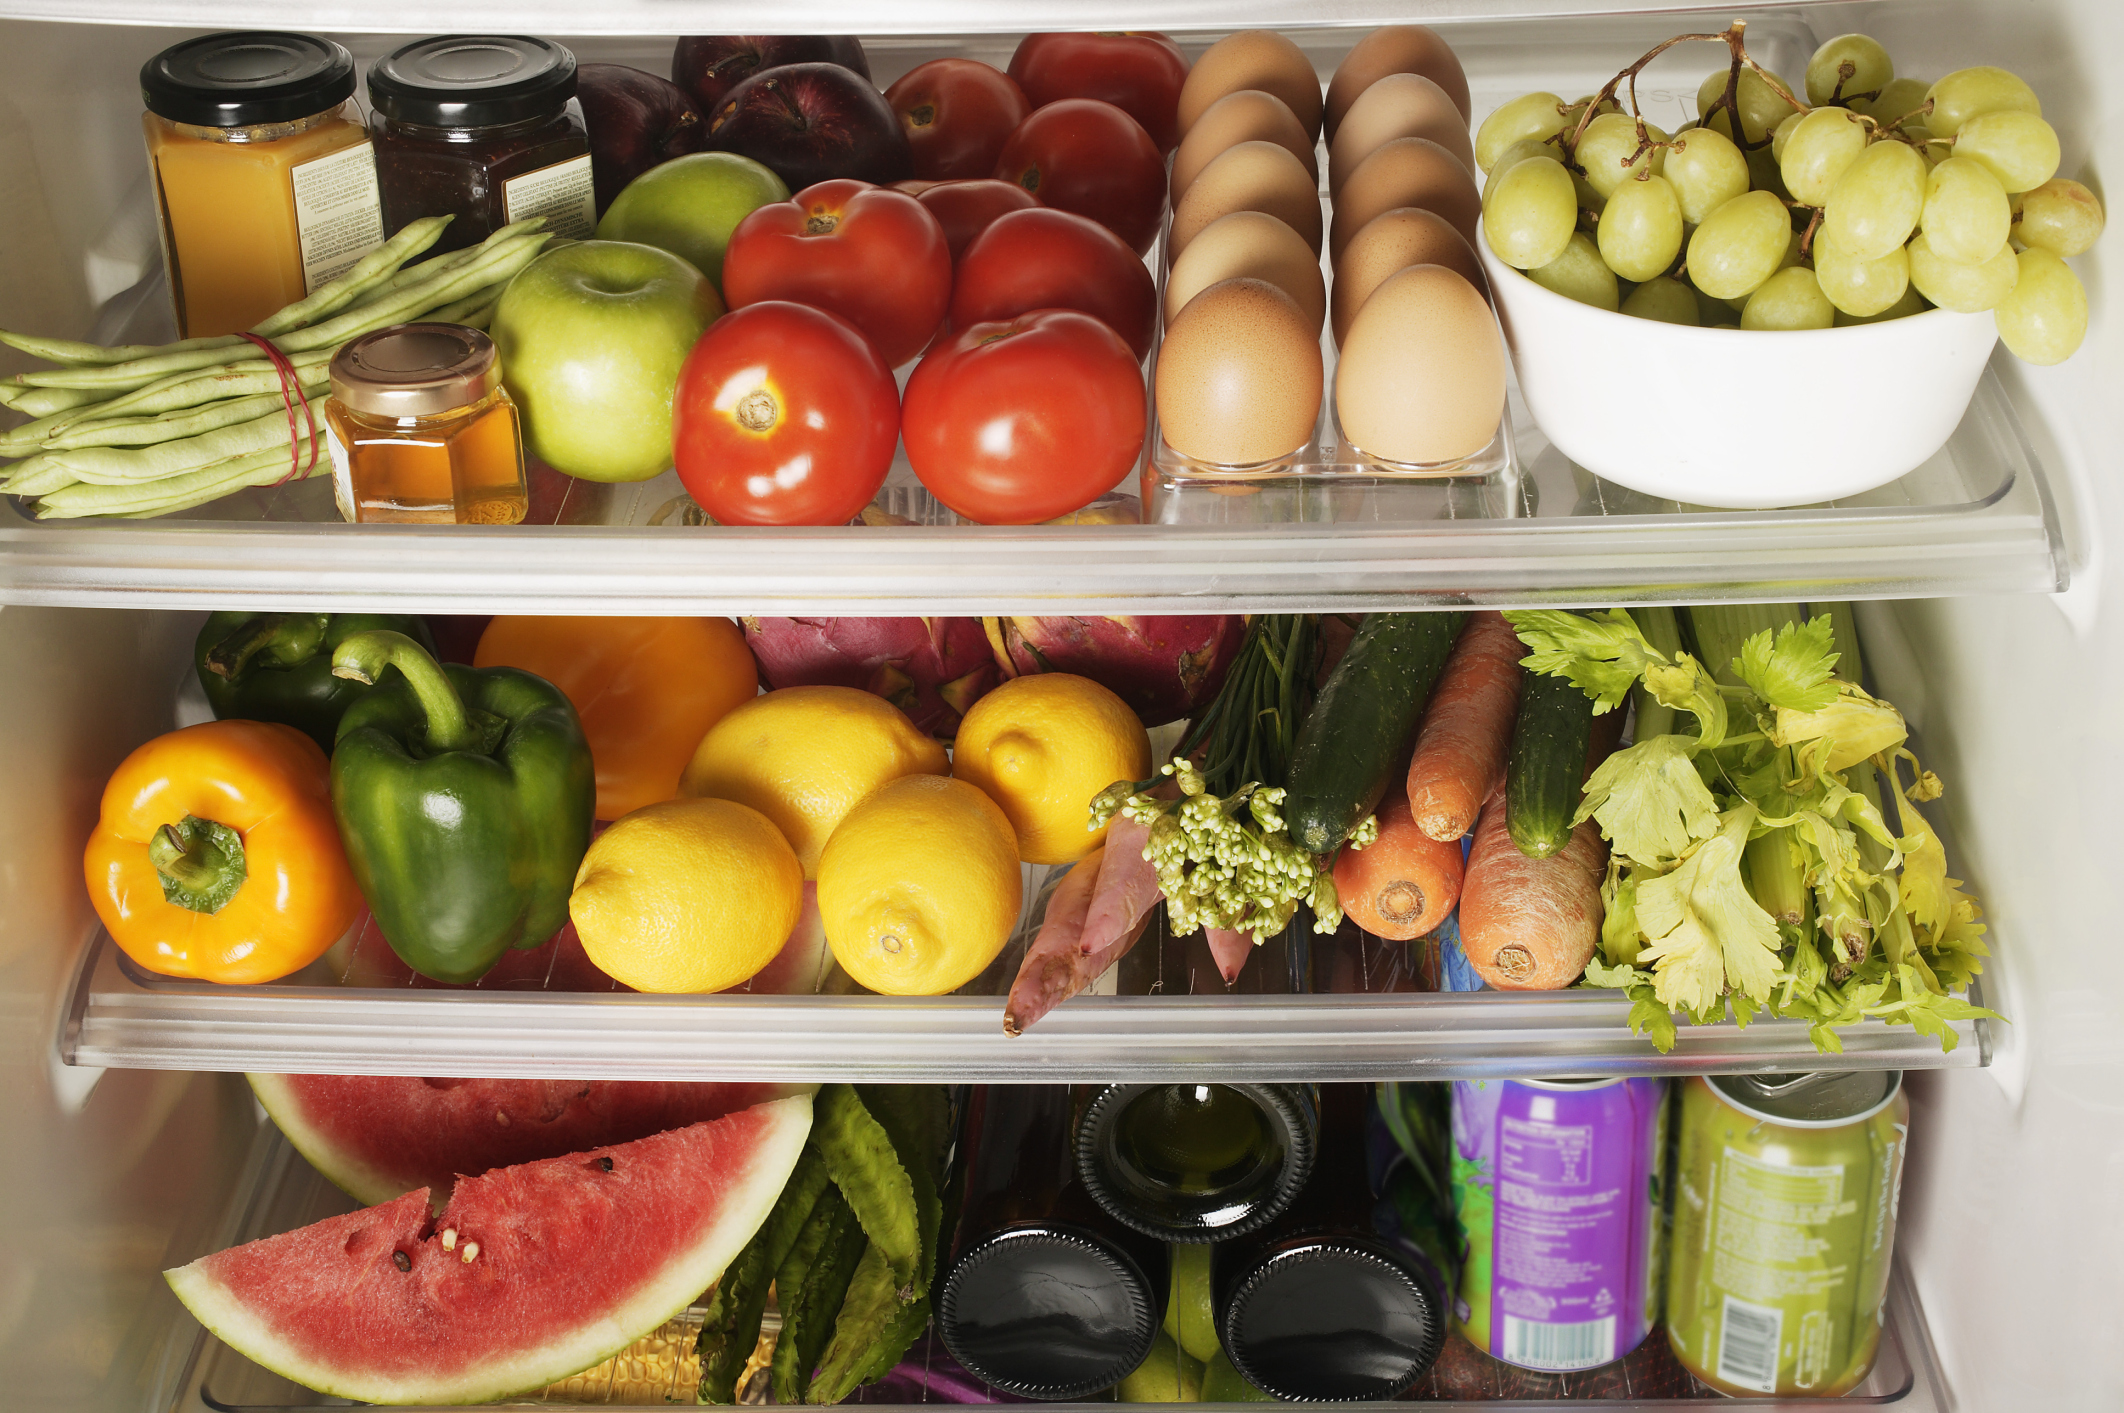 Packed Refrigerator Shelves